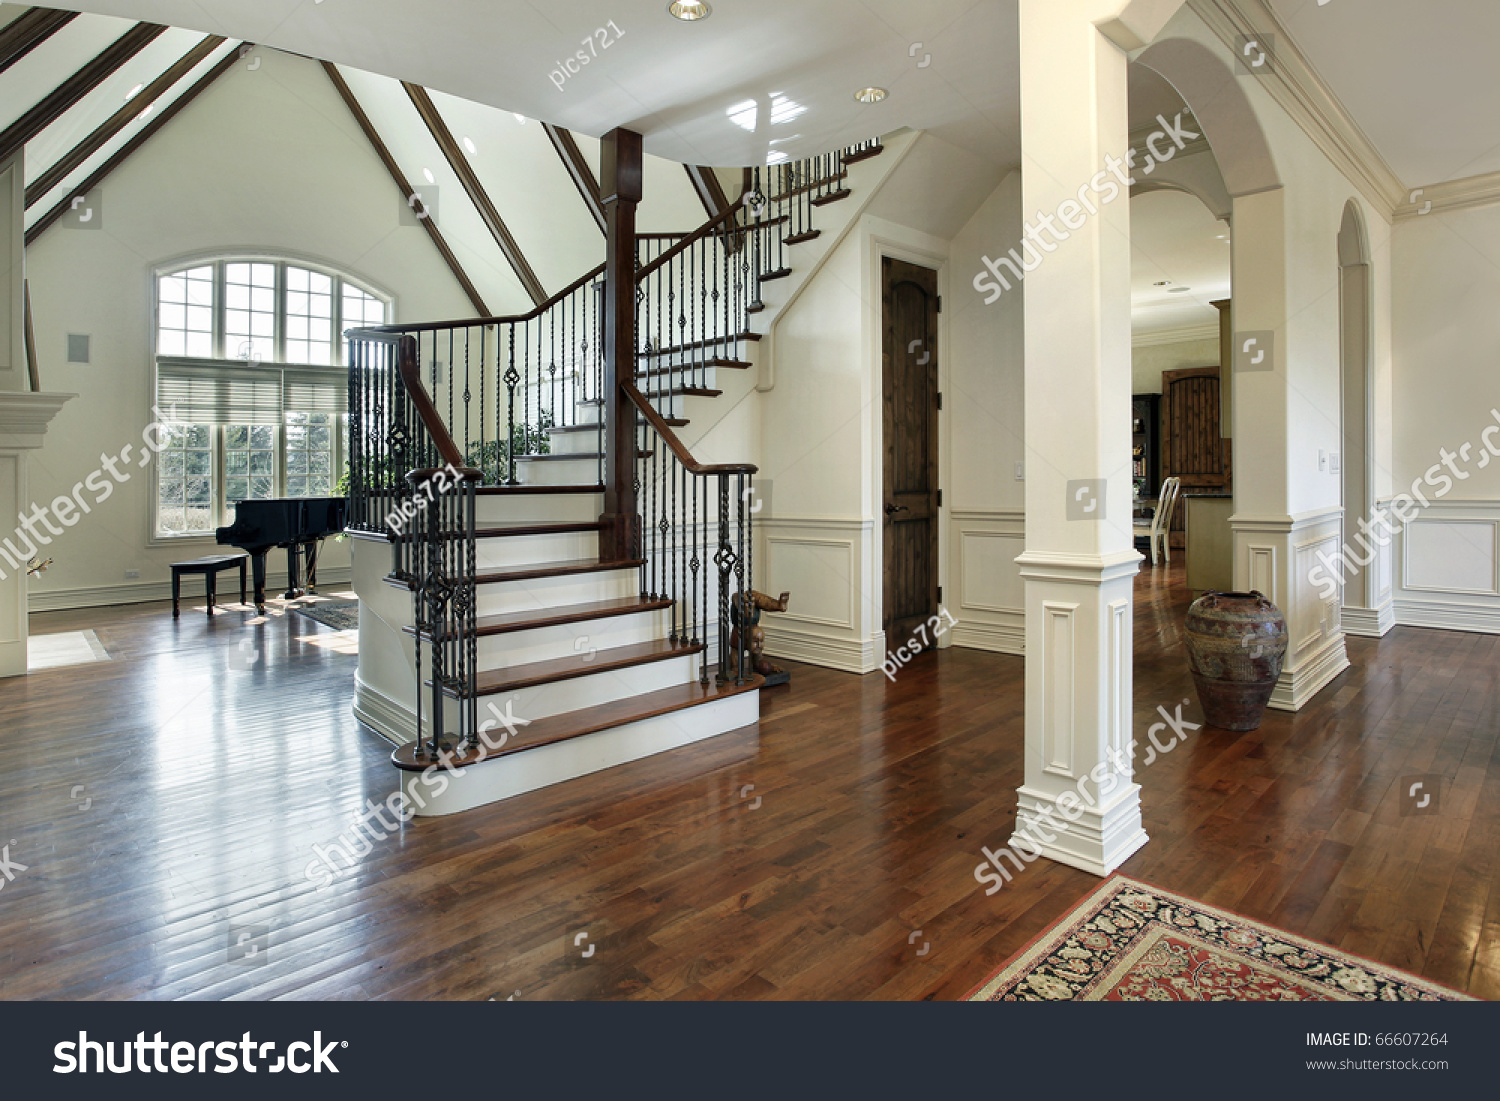 Foyer Into Great Room : Foyer luxury home arched entry into stock photo